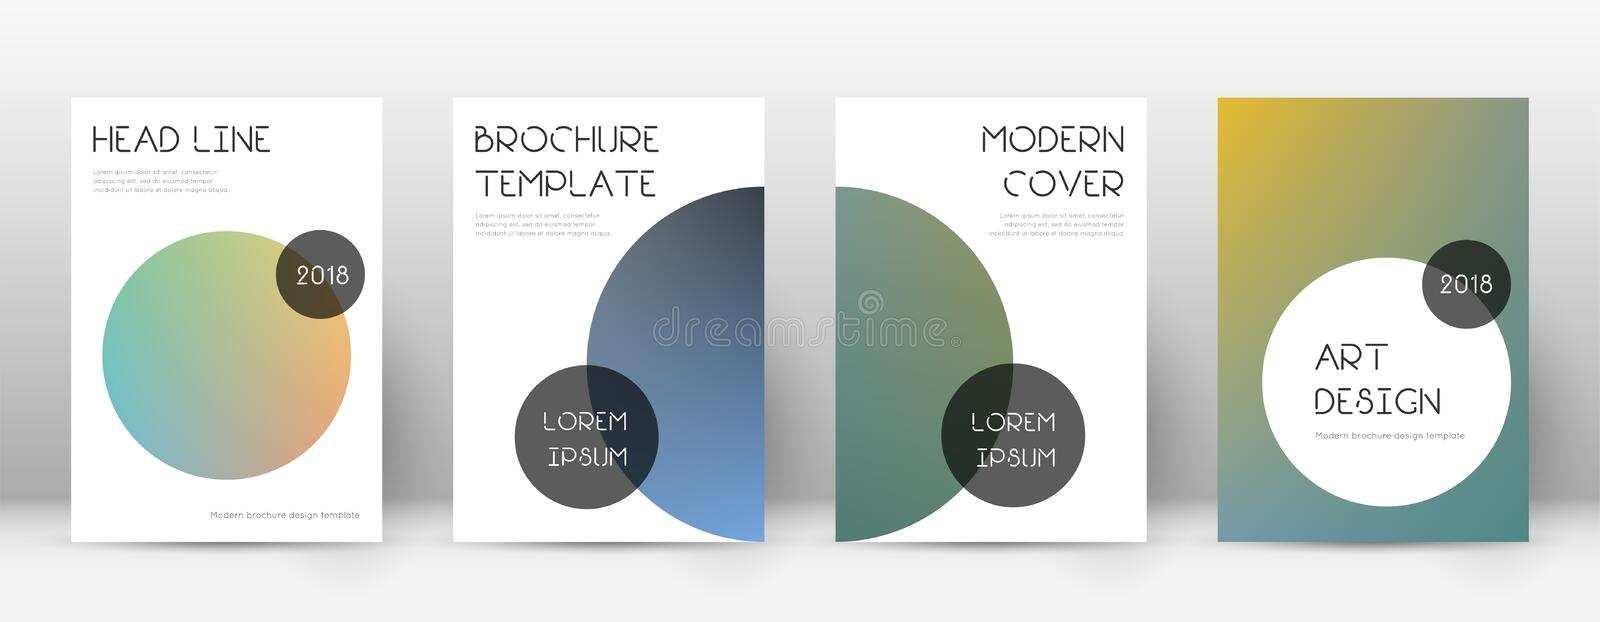 Flyer layout. Trendy likable template for Brochure, Annual Report, Magazine, Poster, Corporate Presentation, Portfolio, Flyer. Beauteous color transition cover royalty free illustration